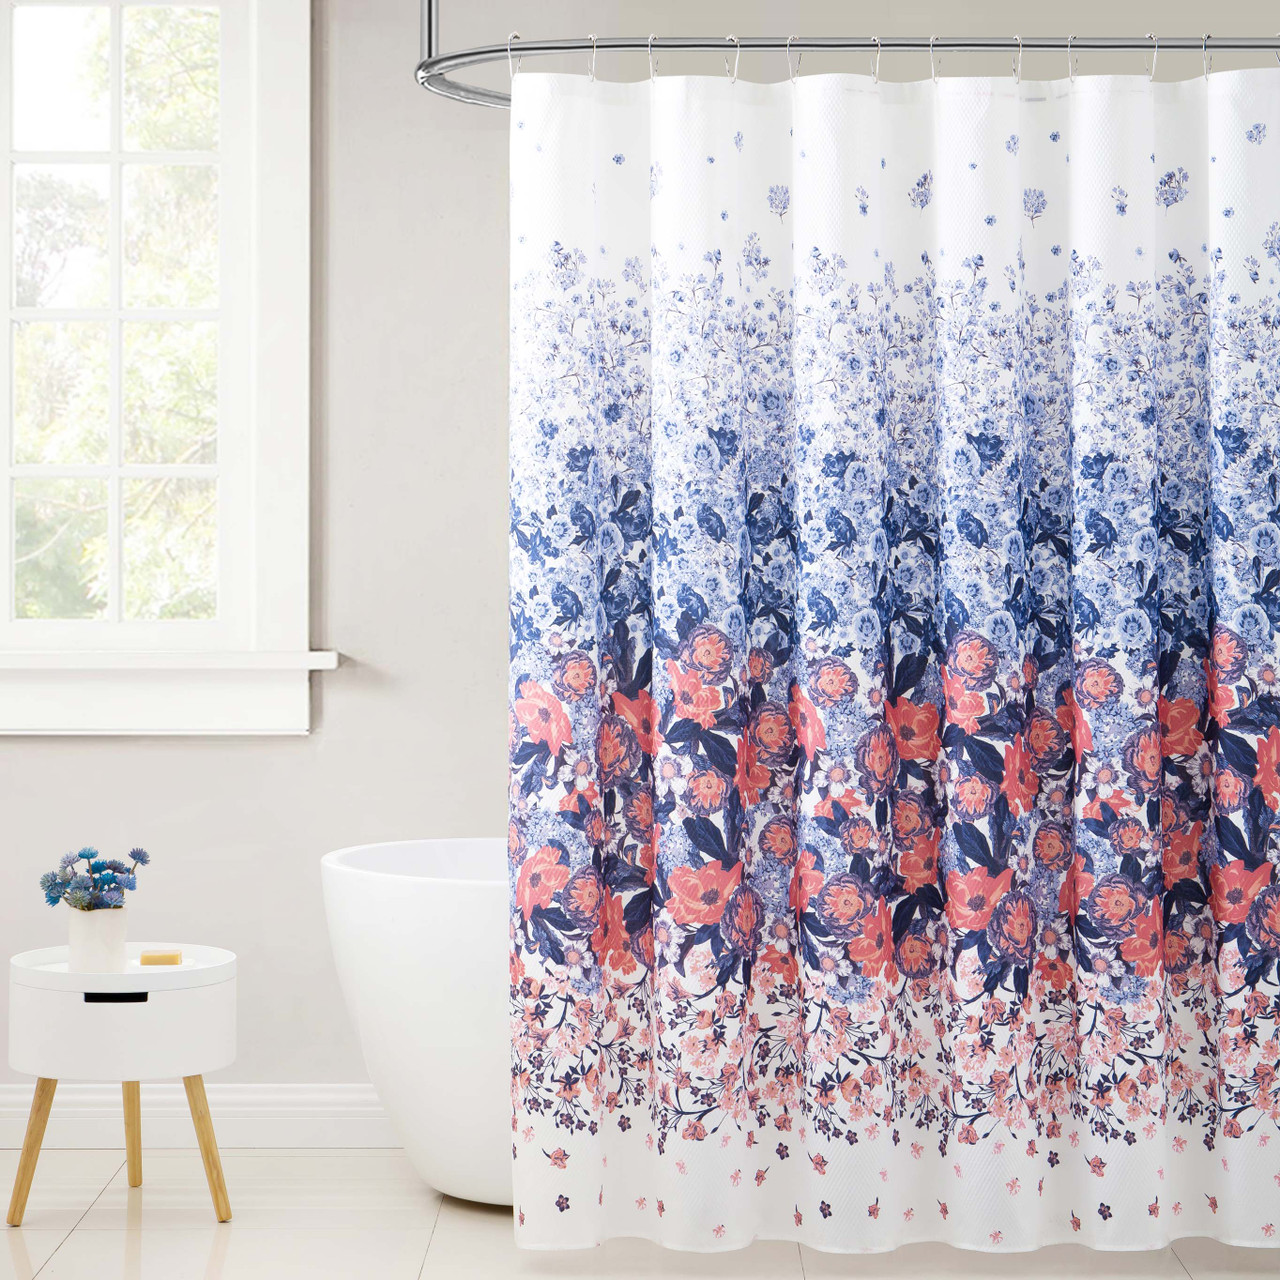 Fabric Shower Curtain For Bathroom White With Navy And Orange Coral Floral Design 72in X72 In My Infinity Store